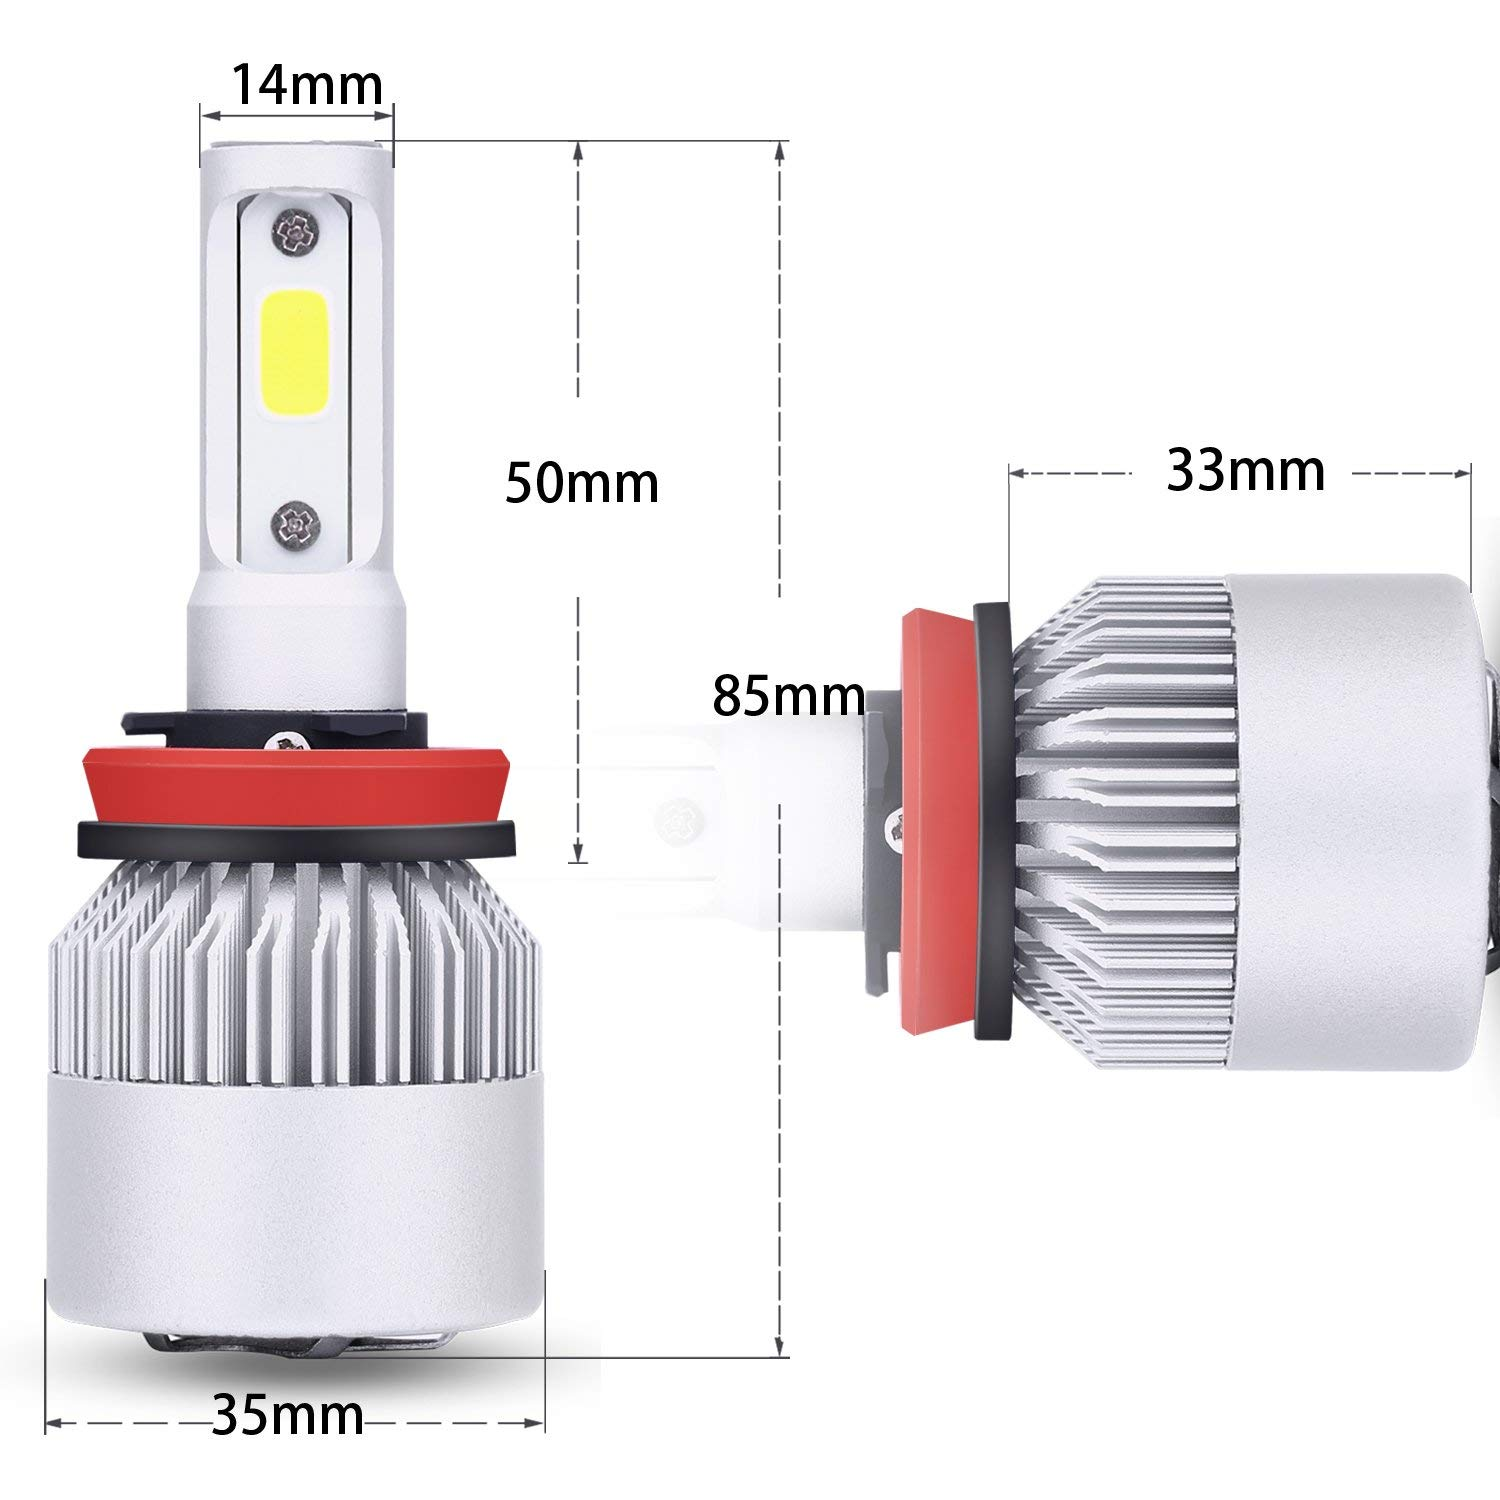 H8,H9 Led Headlight Bulb kirlor Led Car Lights with COB Chips 8000 Lumens 6000K Cool White Adjustable-Beam Bulbs IP65 Waterproof All-in-One Conversion Kit H11